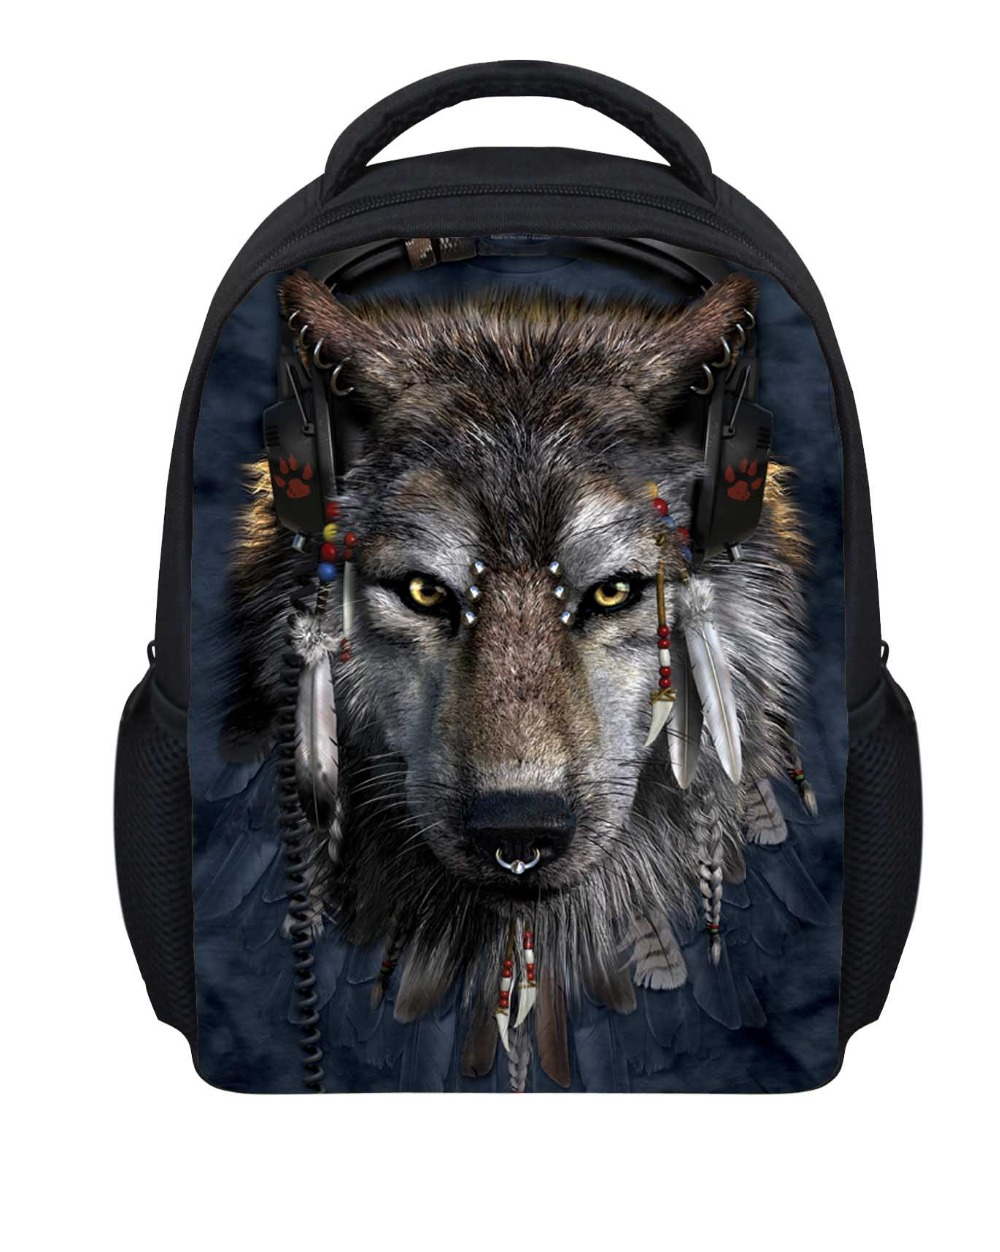 Cool Wolf Printing Childrens School Bags for Boys,3D Animal Schoolbag Students Mini Kids Orthopedic Bookbags Children Mochila<br><br>Aliexpress